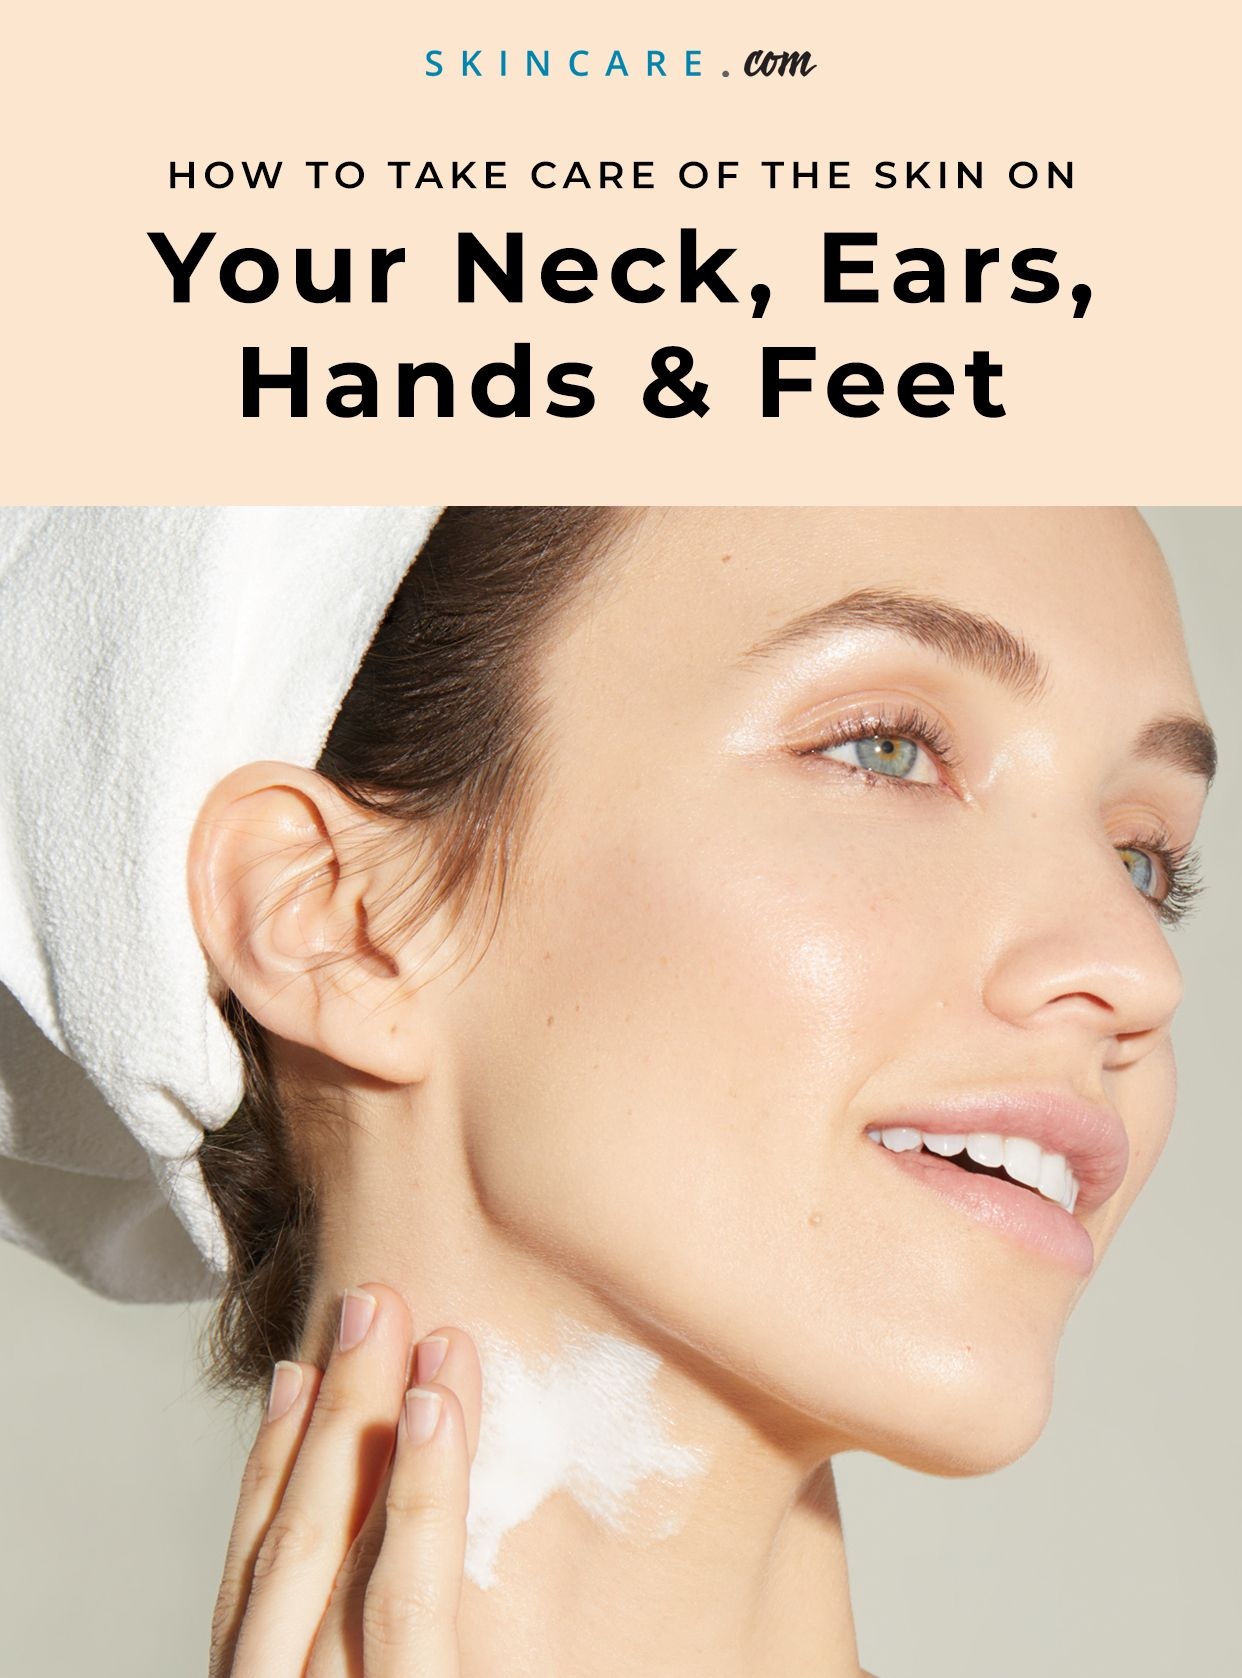 How To Take Care Of The Skin On Your Neck Ears Hands And Feet Skincare Com By L Oreal Skin Sensitive Skin Care Skin Care